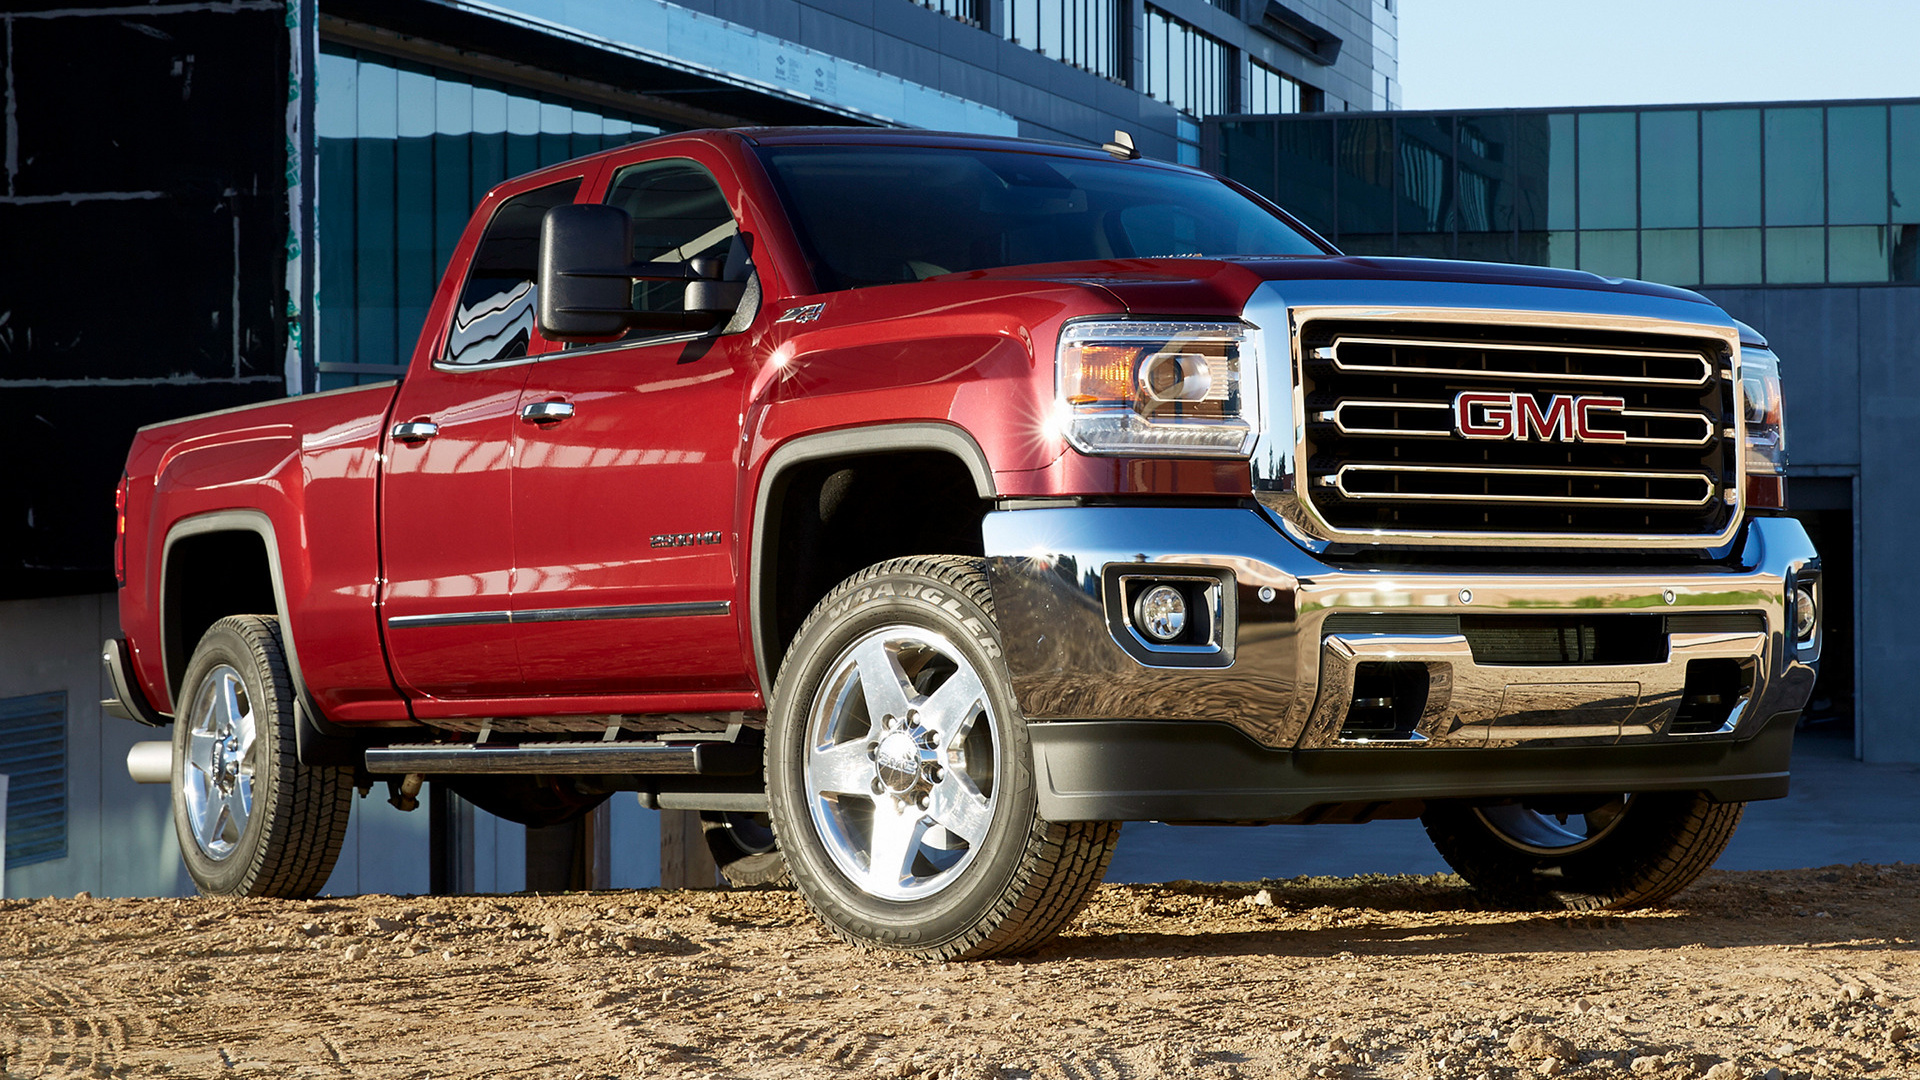 2015 Ram 2500 >> 2015 GMC Sierra 2500 HD SLT Double Cab - Wallpapers and HD ...